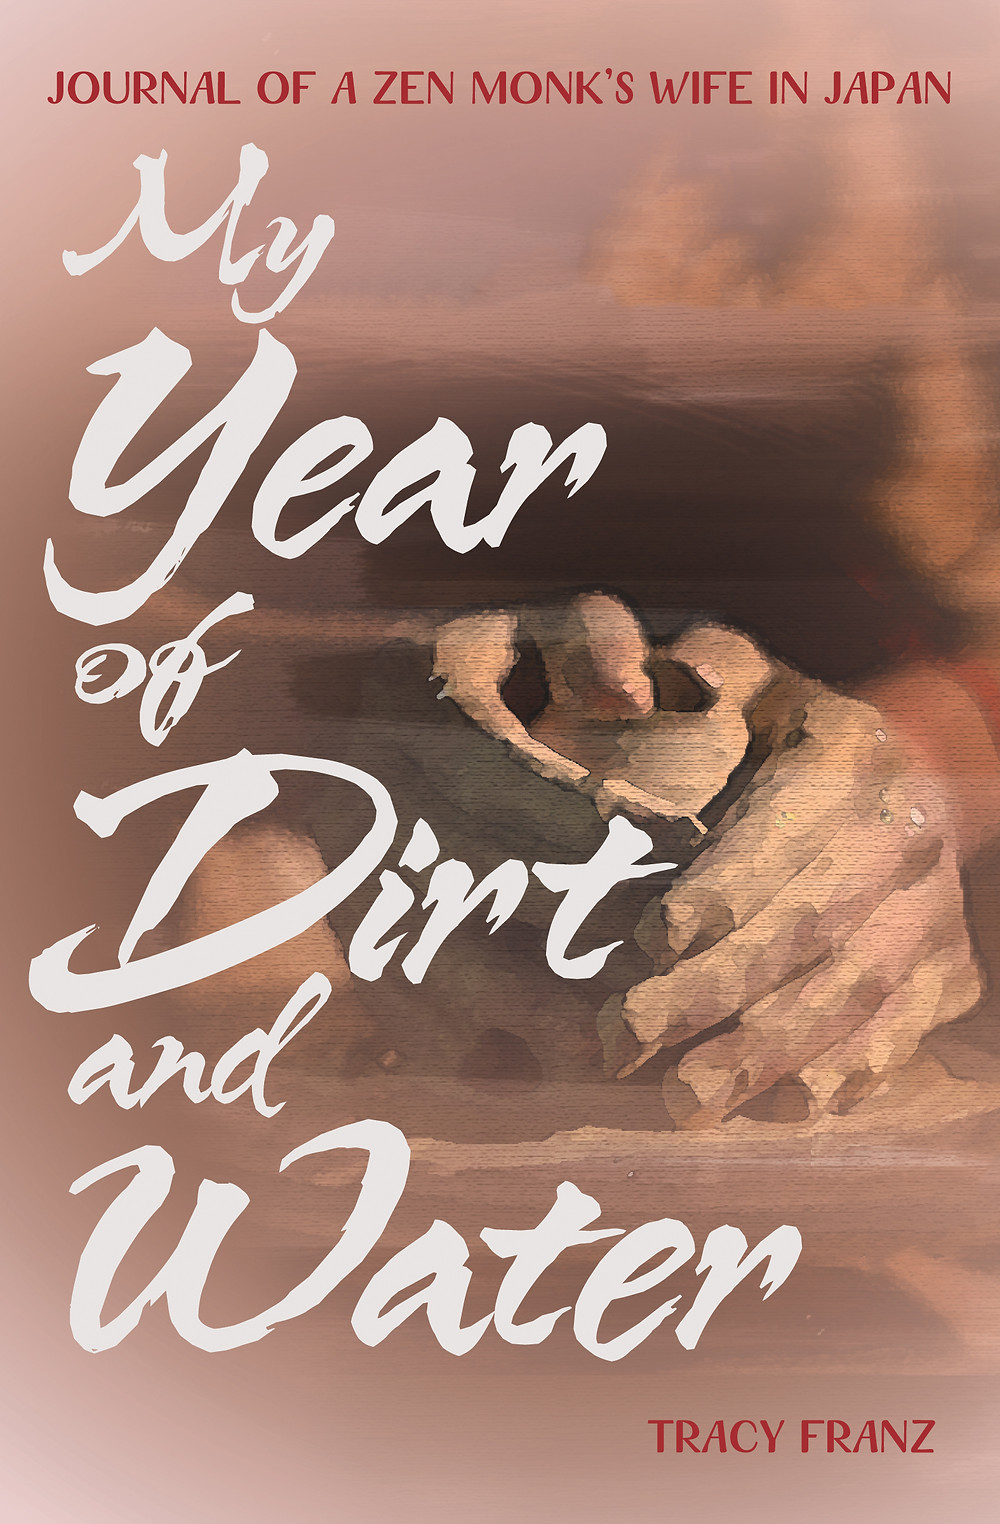 Foreword Reviews on 'My Year of Dirt and Water: Journal of a Zen Monk's Wife in Japan' by Tracy Franz